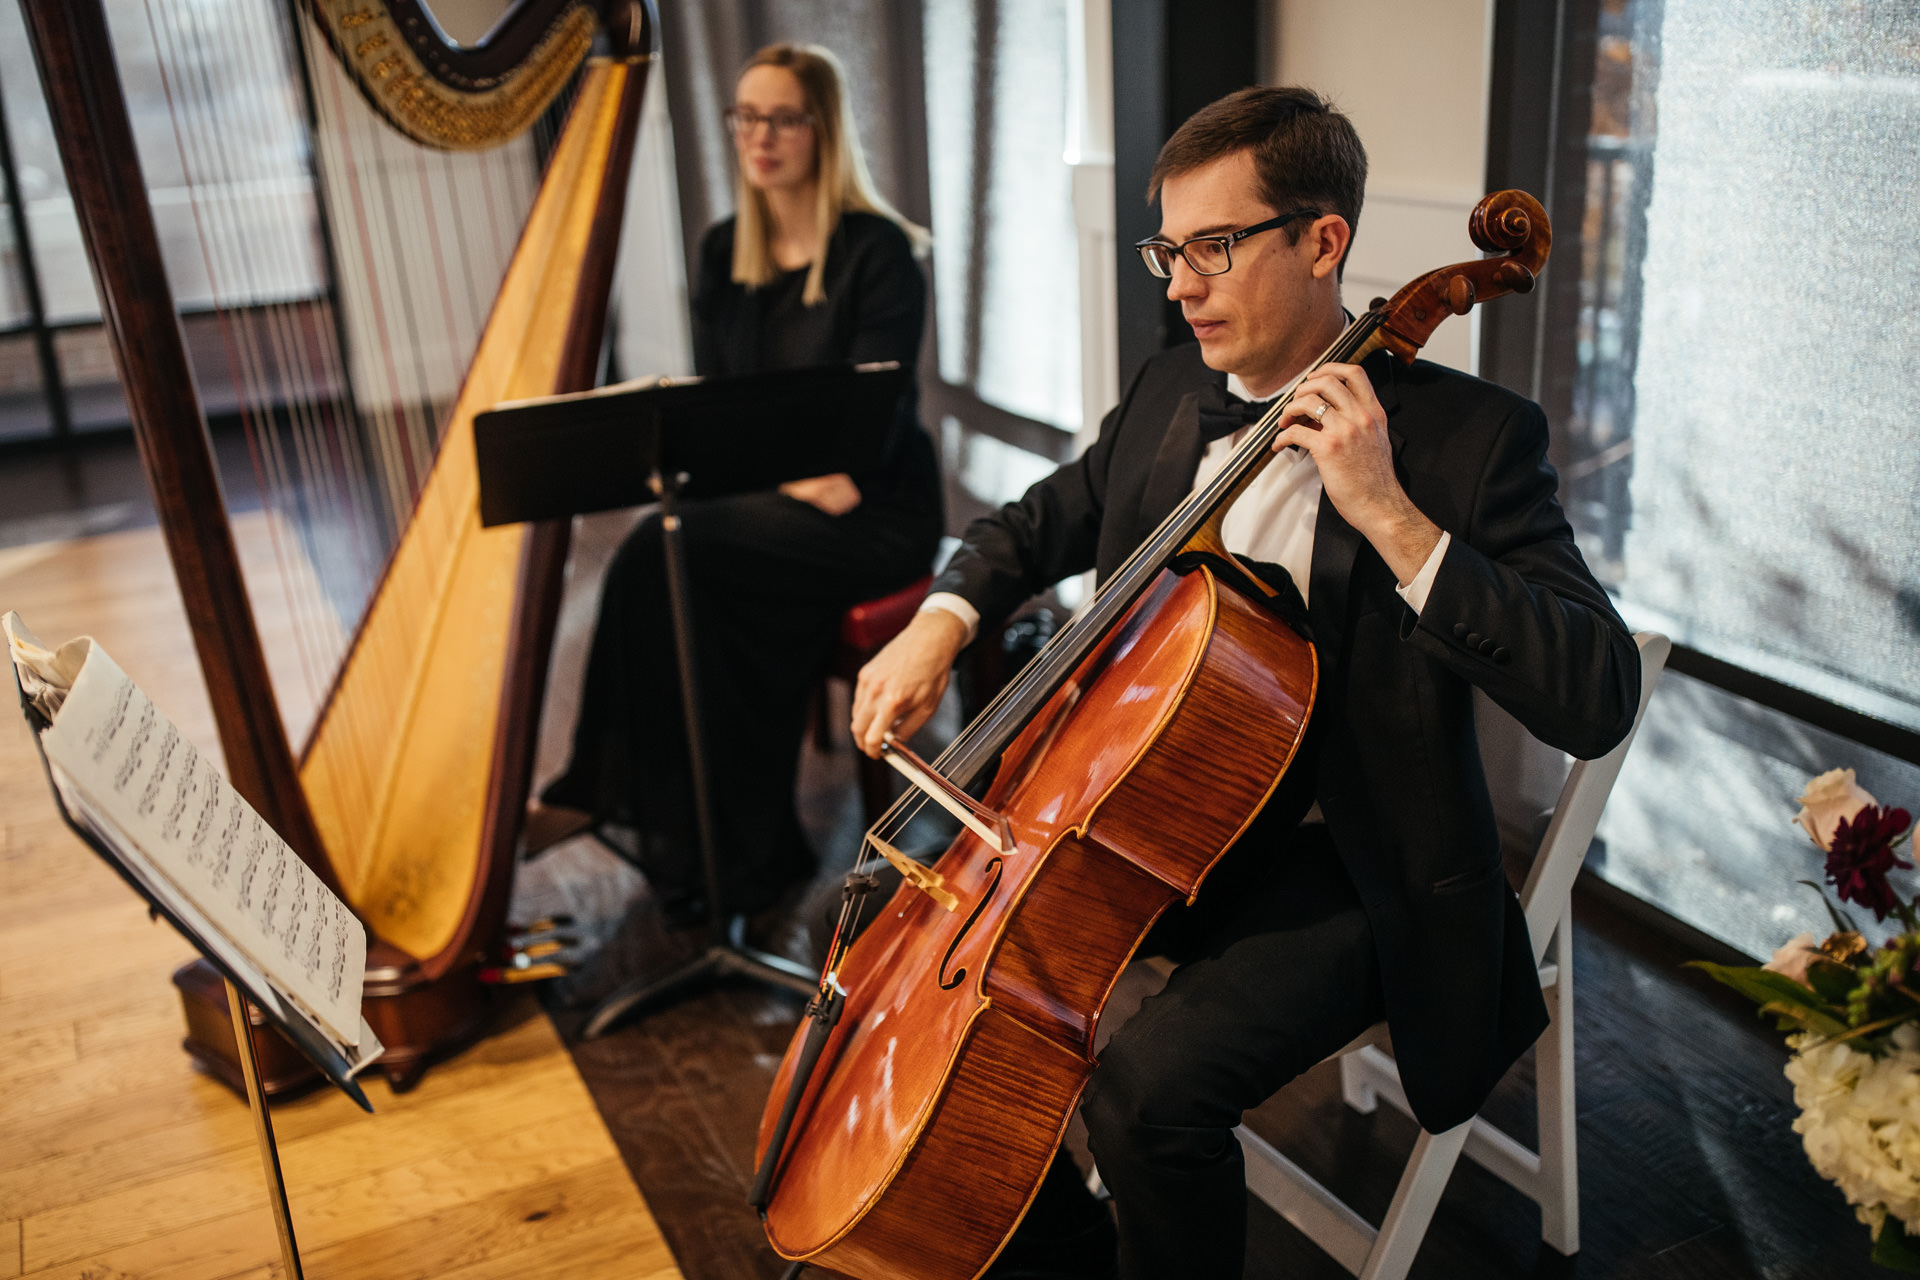 Gerusa Eric The Falls Reception Center Harp Cello Music